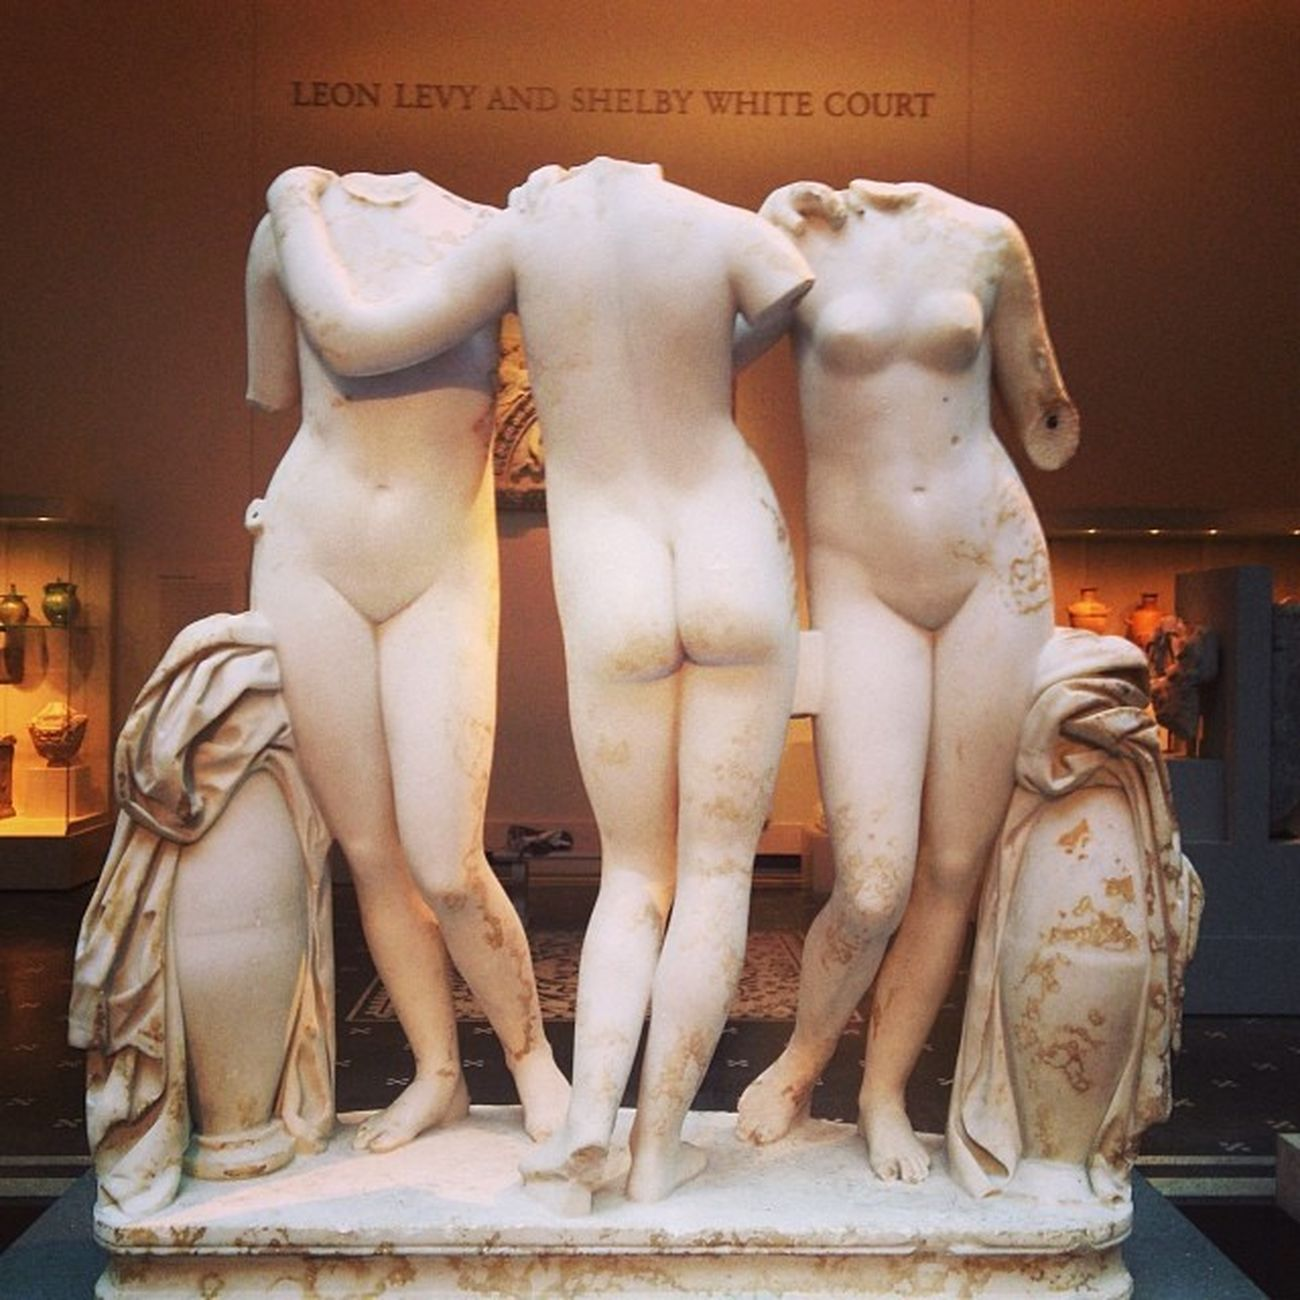 The Three Graces. Symbolized Fertility & Growth , Arts , & Harmony between man. Ancientrome 2000YearsOld 2ndCenturyCE Sculpture Art Marble Idealistic Themet Themetropolitanmuseumofart @metmuseum